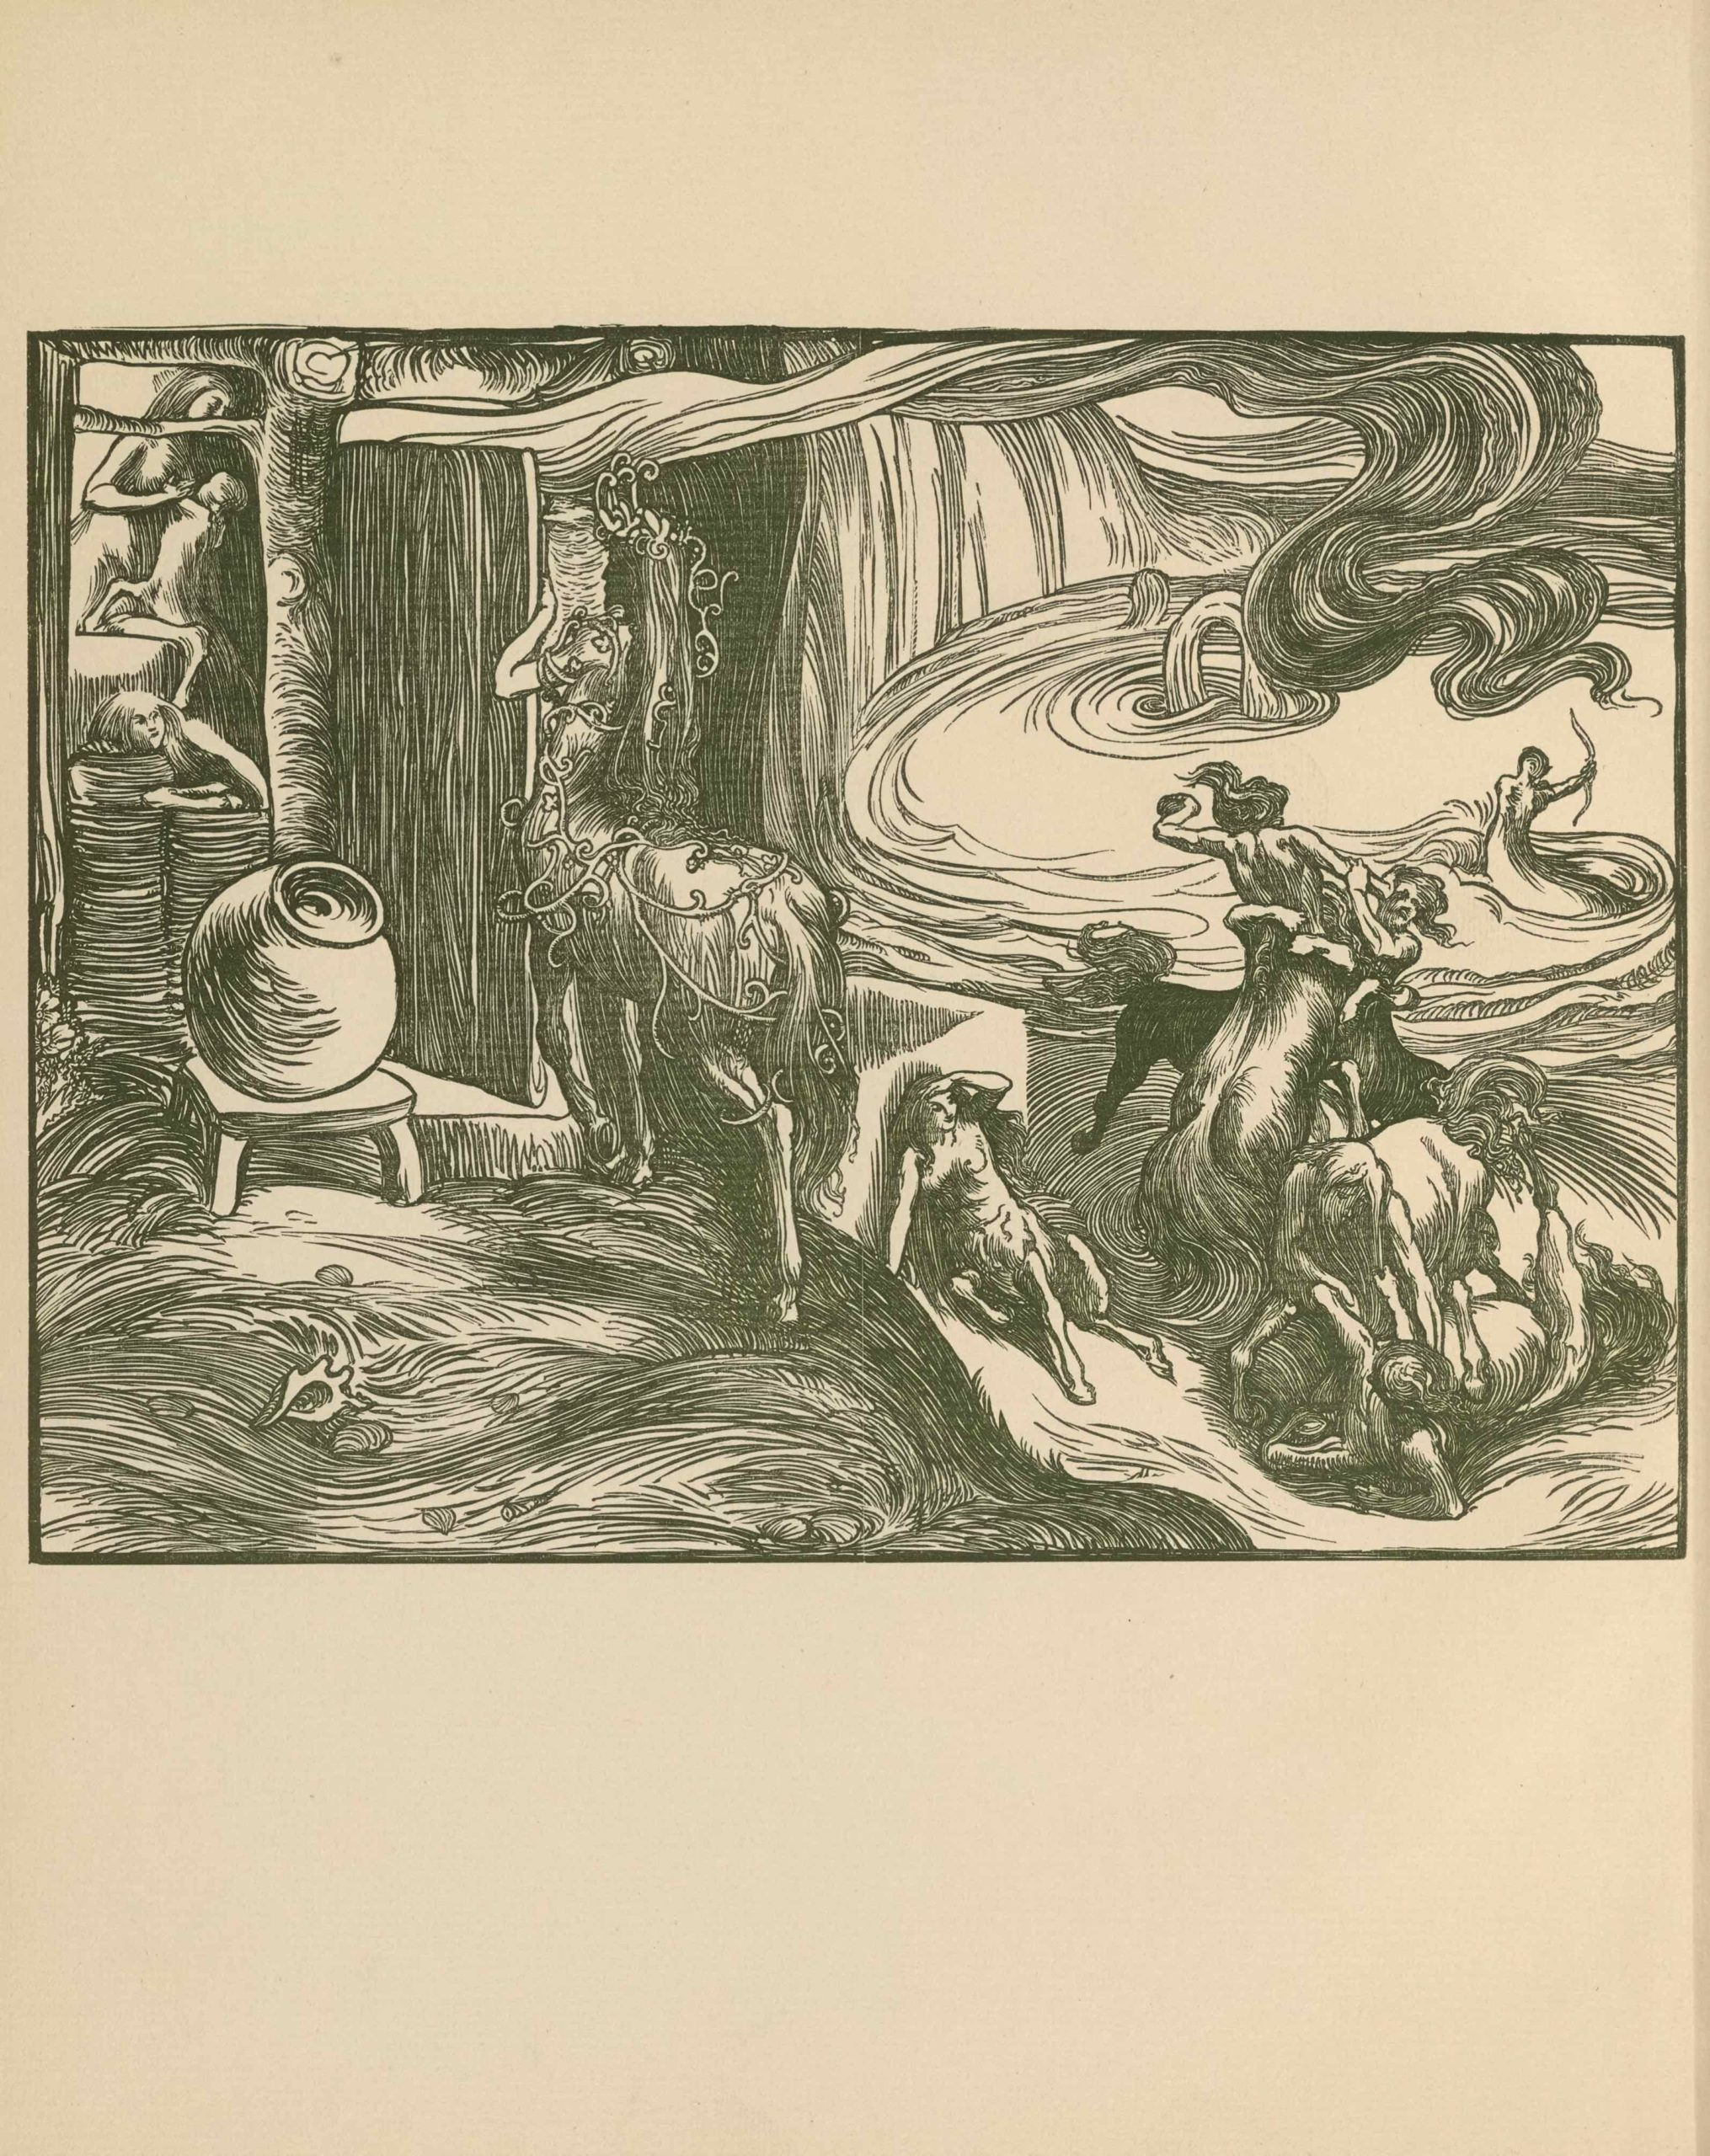 The wood-engraved image is set into a square, ruled border, printed, as is the                          image, in dark green ink. The image depicts an imaginary scene by a grotto and waterfall,                          where centaurs of various ages and sexes go about their daily life. The viewing position                          is somewhat above, looking down. The left half of the picture shows a crude home for the                          centaurs and the right half of the picture shows the landscape in which they live. In the                          centre foreground, a female centaur stands with her back to the viewer; she appears about                          to enter the wooden building. She has long hair and wears a vine-like headdress that extends                          down her body, entangling her tail and hind legs. She stands in front of the open doorway,                          holding a wooden doorframe in front of her to the right. Her shadowed face is in profile.                          In the interior of the building, in the extreme left, is a female centaur suckling an infant                          centaur while another child centaur leans on several urns. Between these centaurs and the                          centaur wearing the headdress is a large round urn resting on a stool. Behind the urn a tree                          that appears to be a supporting beam for the building extends up to the top of the frame,                          with branches that span to the left and right. In front of the urn is a grassy sward,                          extending to the right half of the image. In the right foreground four male centaurs engage                          in wrestling in front of a pool, where other centaurs are swimming, one of which is holding                          an archer's bow. Behind the pool, a waterfall is depicted. A female centaur rests against a                          wall structure observing the wrestling. In the